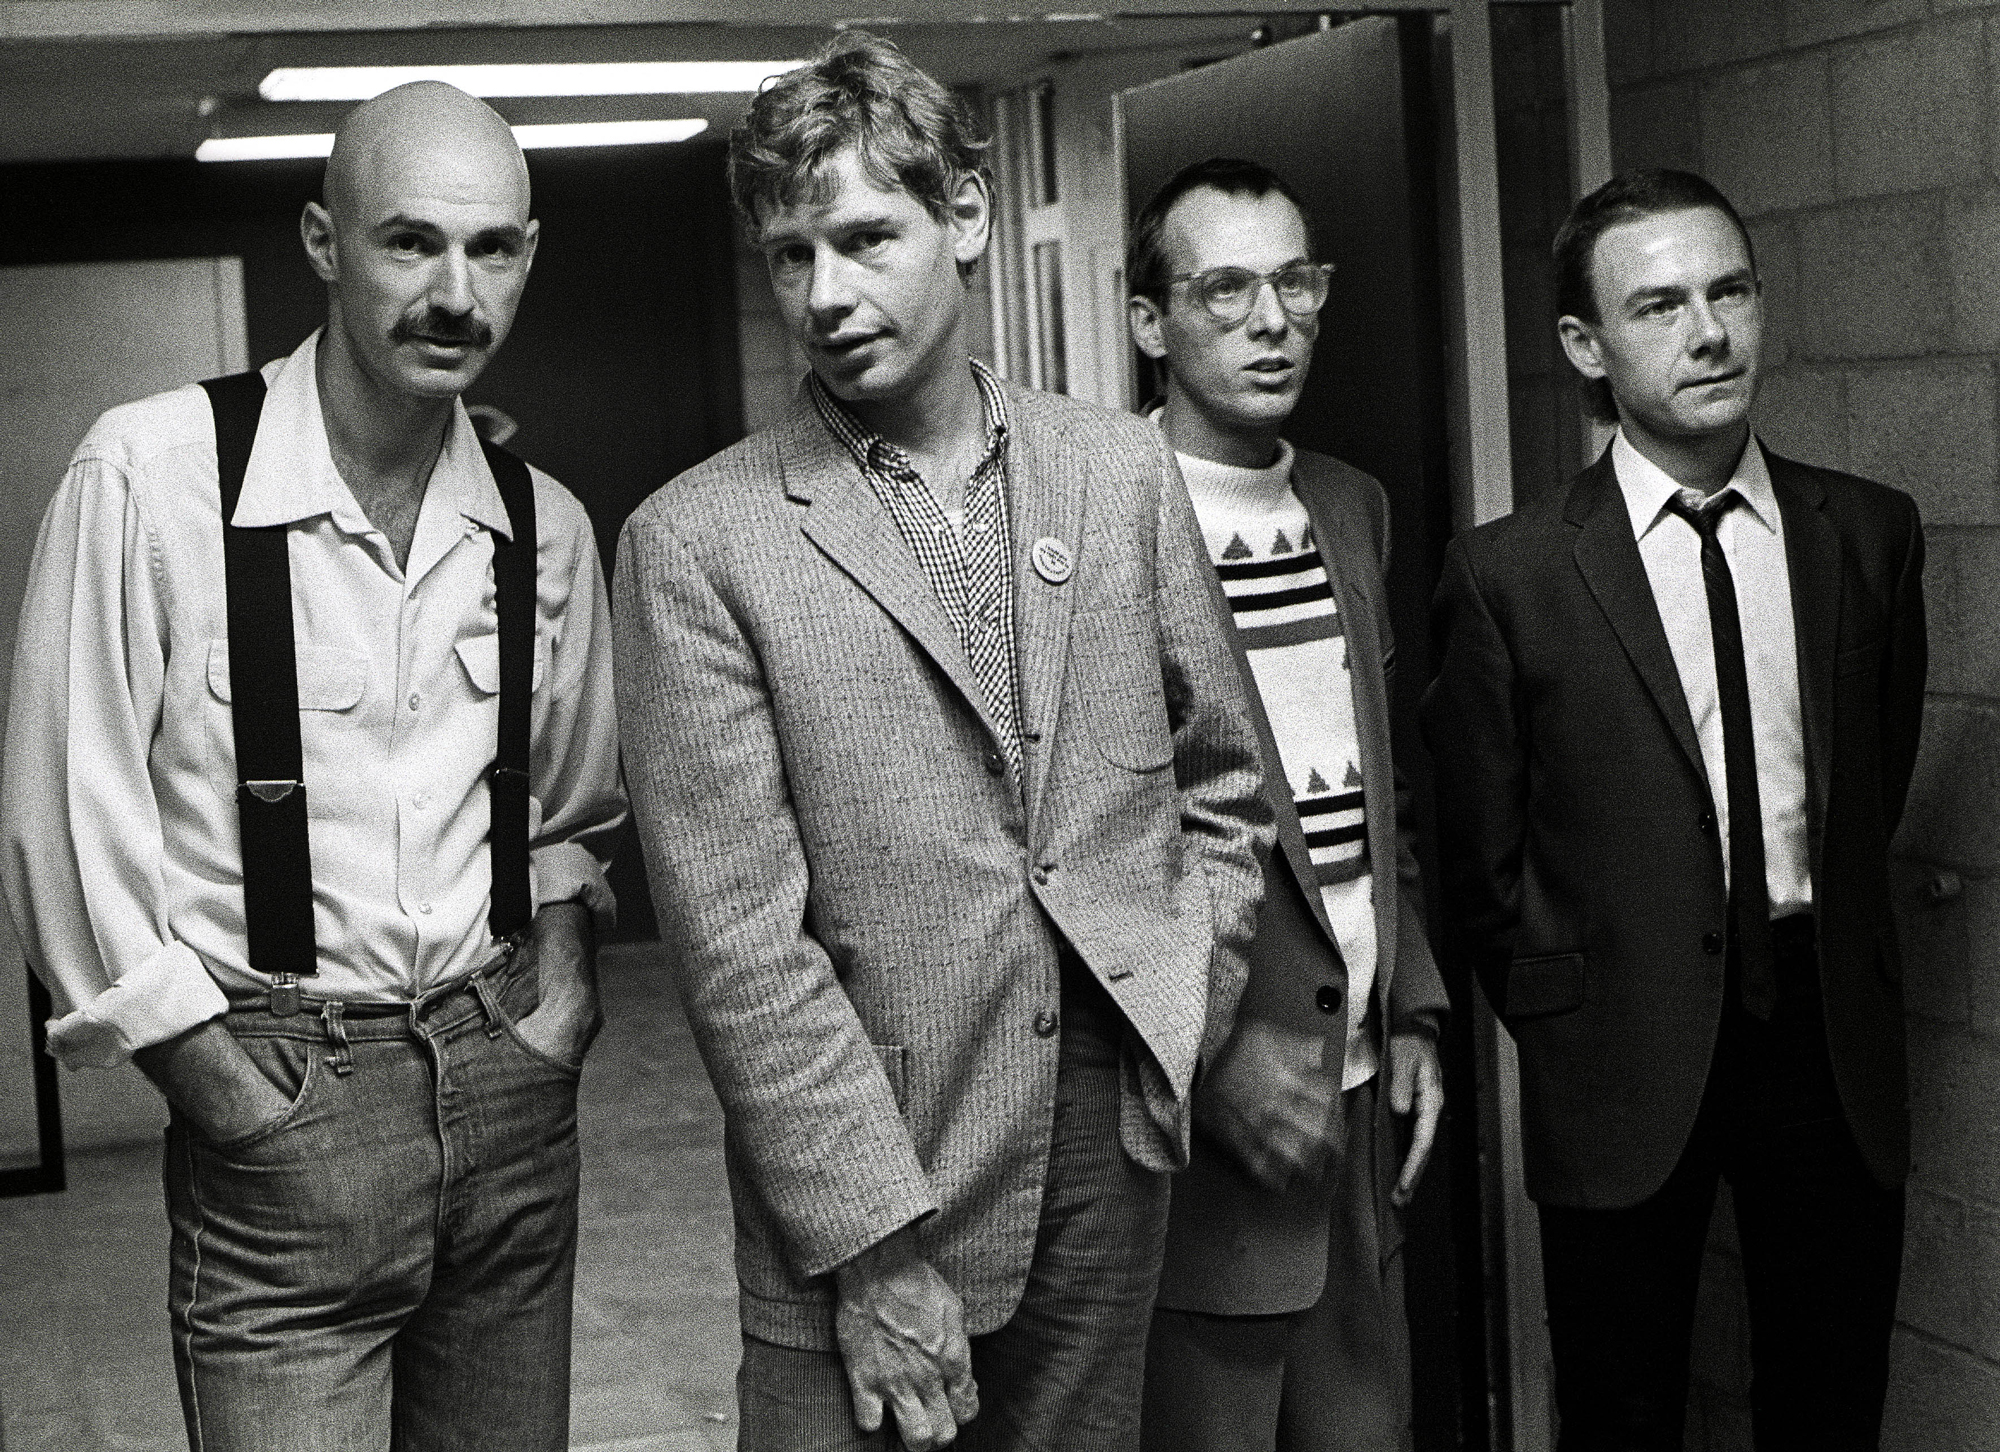 King Crimson, group portrait, backstage at Vredenburg, Utrecht, Netherlands, 12th October 1981. L-R Tony Levin, Bill Bruford, Adrian Belew and Robert Fripp. (Photo by Rob Verhorst/Redferns)